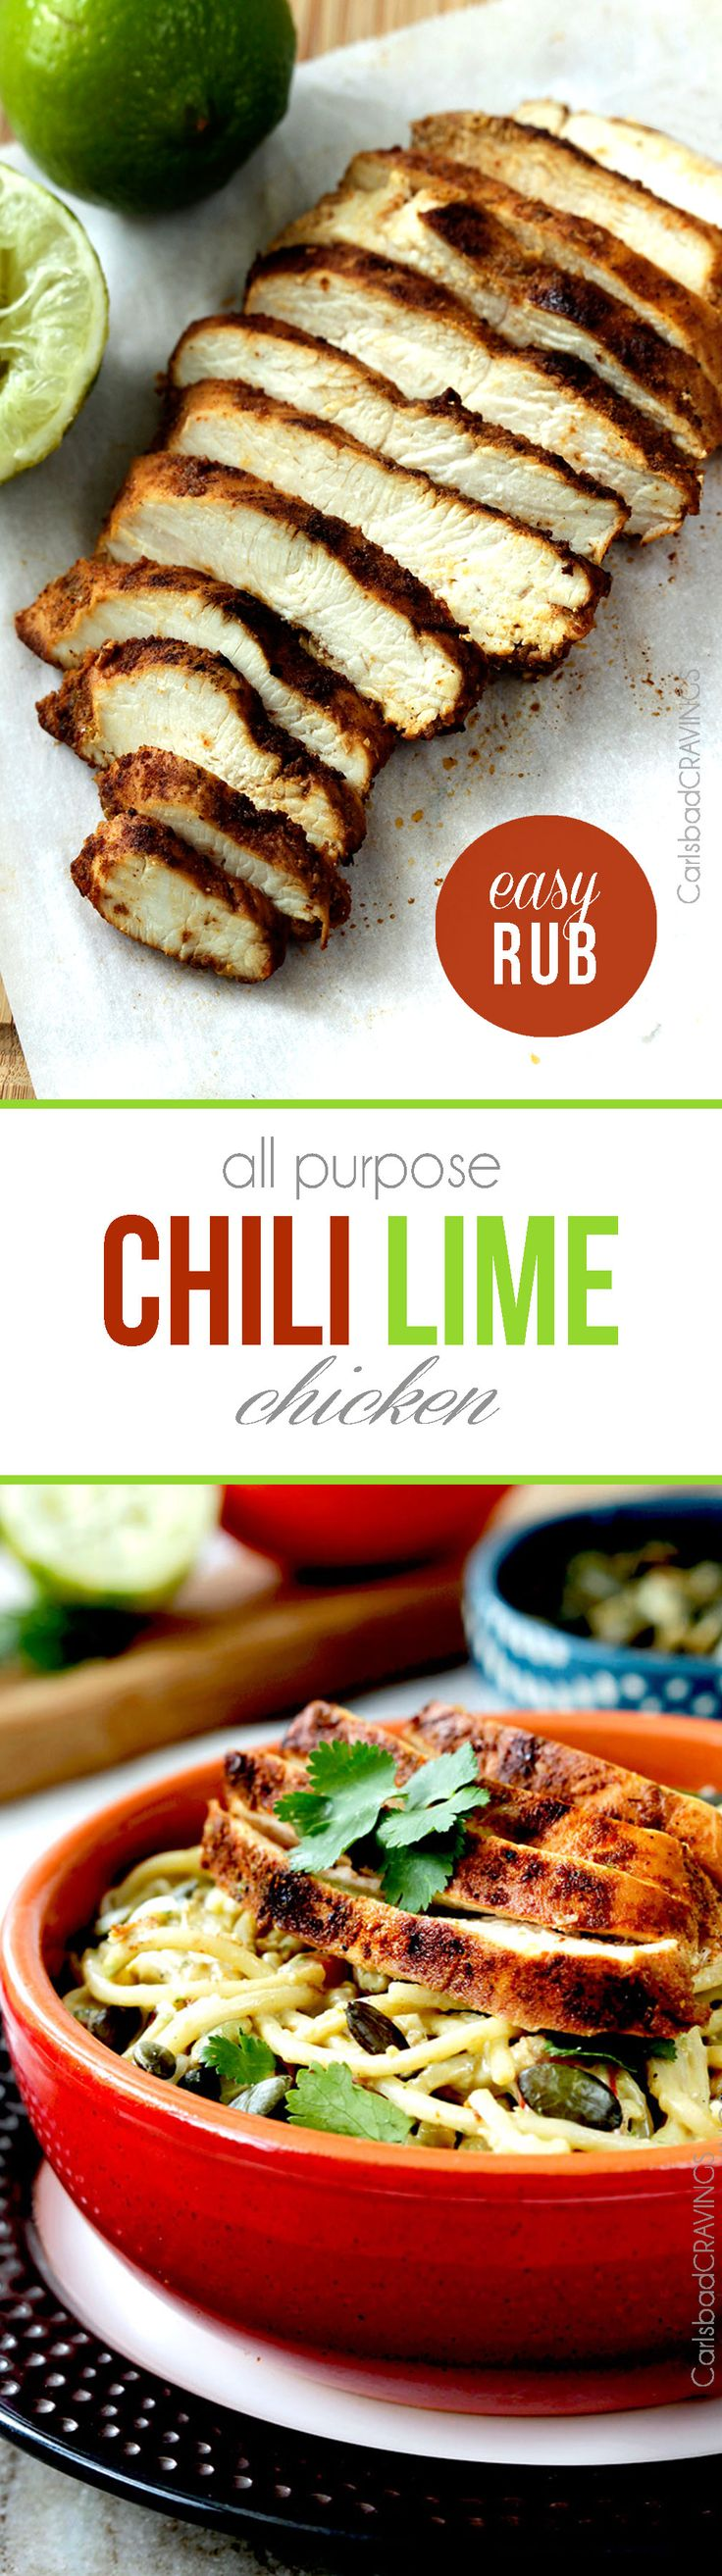 All Purpose Chili Lime Chicken so moist, tender and exploding with flavor from an EASY rub - perfect for salad, burritos, pasta, tacos etc. I love having this on hand!